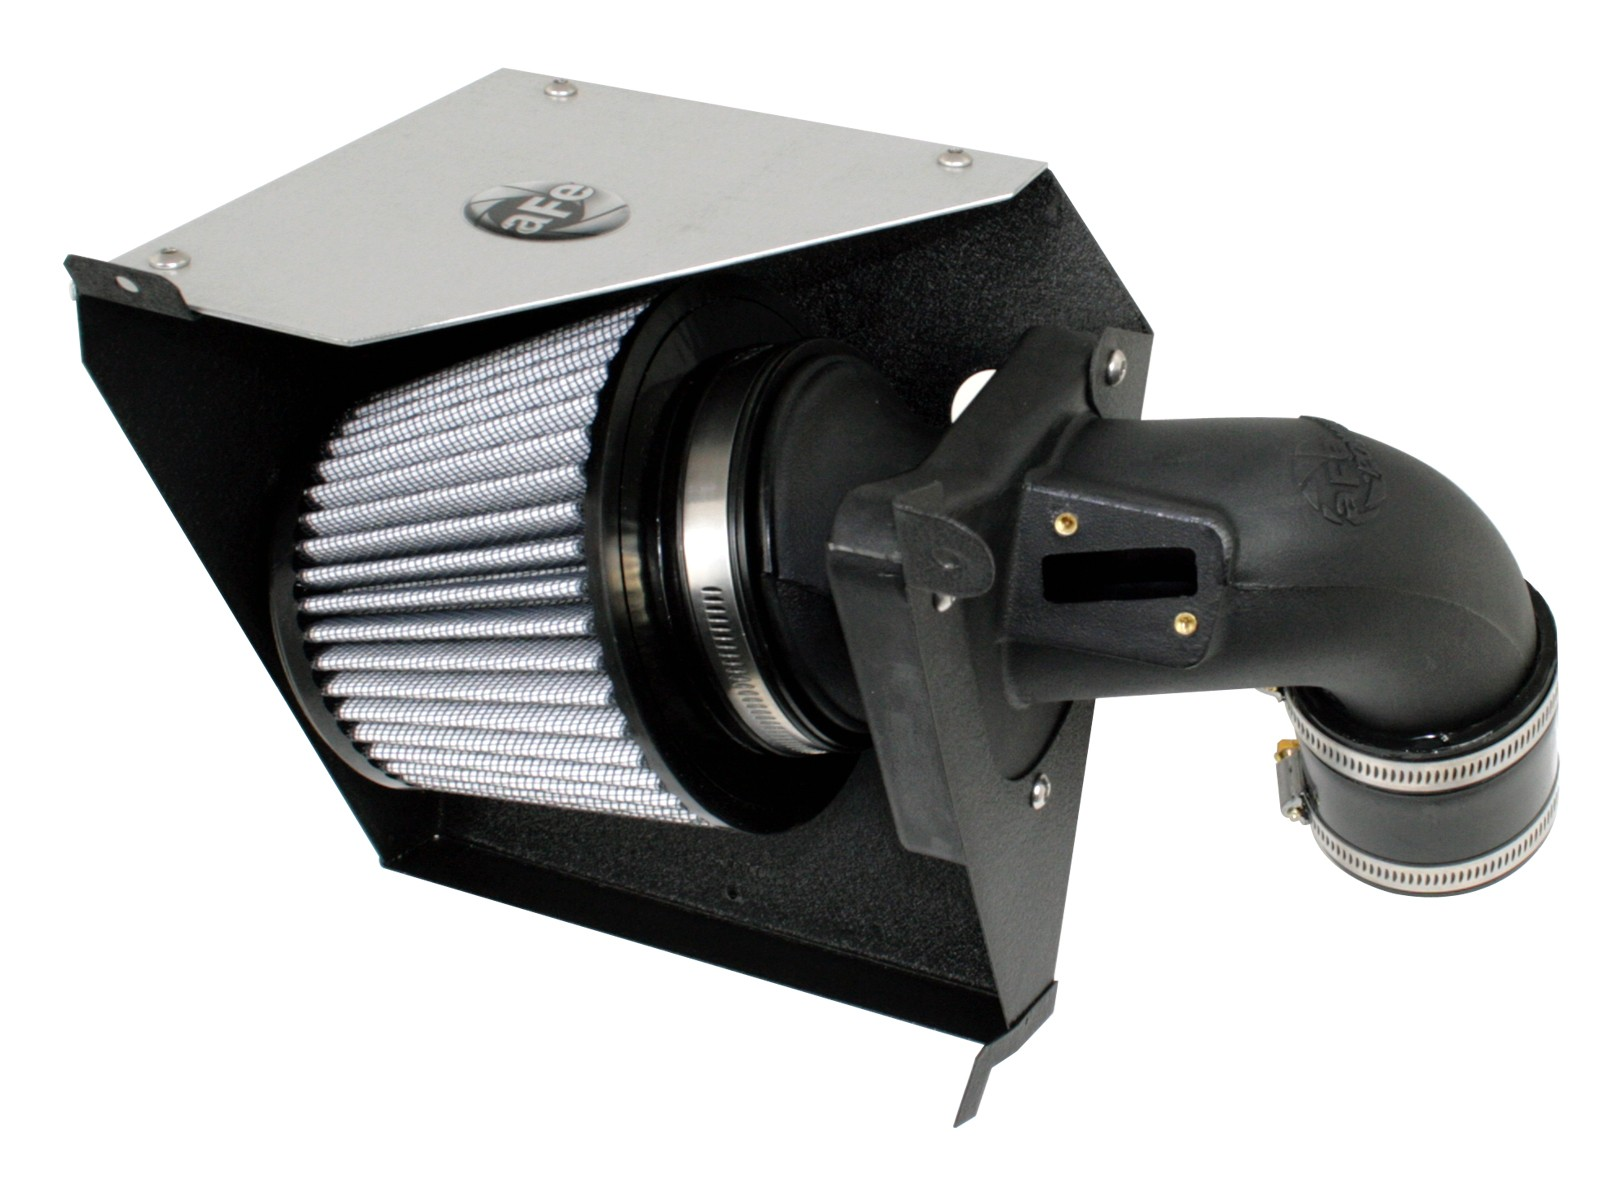 aFe POWER 51-11722 Magnum FORCE Stage-2 Pro DRY S Cold Air Intake System